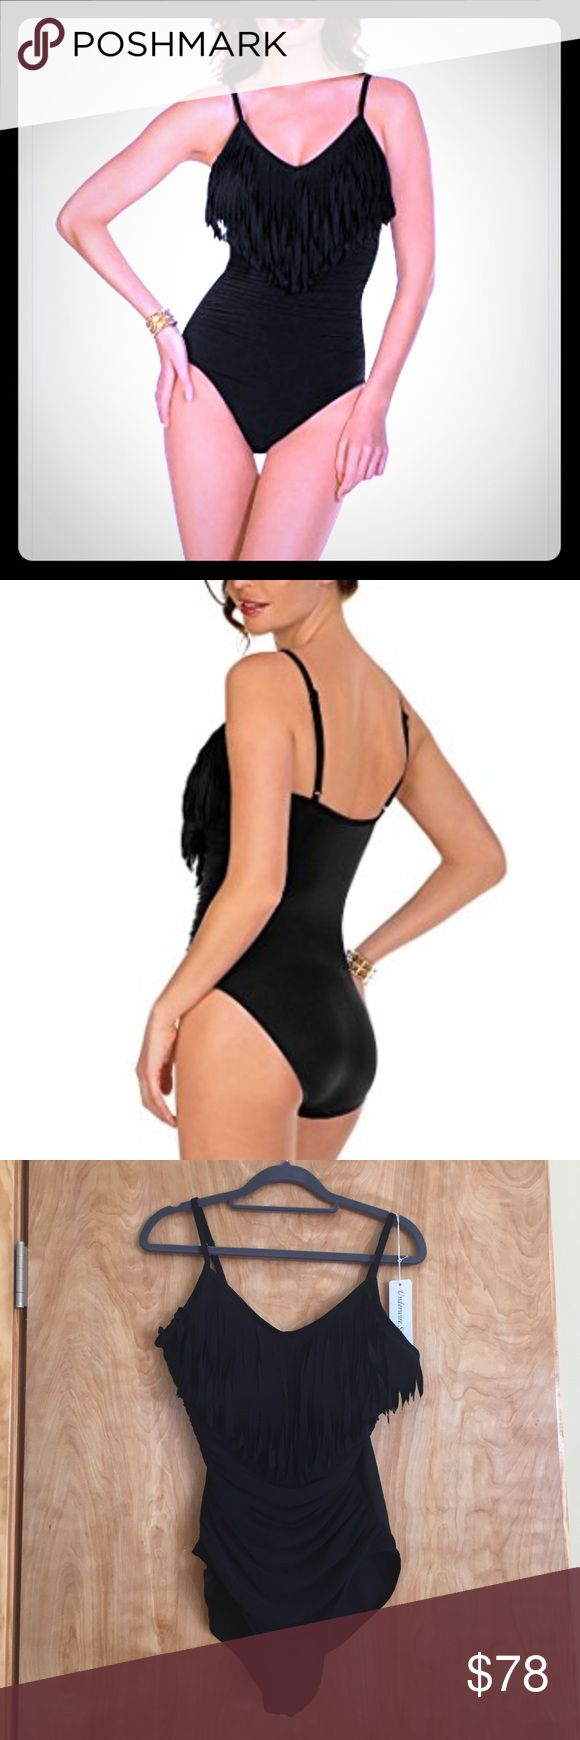 Magicsuit by Miraclesuit Swimwear Fringe Blair 12 Magicsuit by Miraclesuit Swimwear Fringe Solid Blair One Piece-Black-size 12 NWT retail $168 Features 95% polyester, 5% spandex Underwire Magicsuit black fringe solids blaire underwire one piece swimsuit with detailed overlay at the bust enhances while side shirring drastically slims your shape. Neckline and hidden underwire combine modern chic with full support. E. For compression fit, purchase normal clothing size. For comfort fit, purchase…